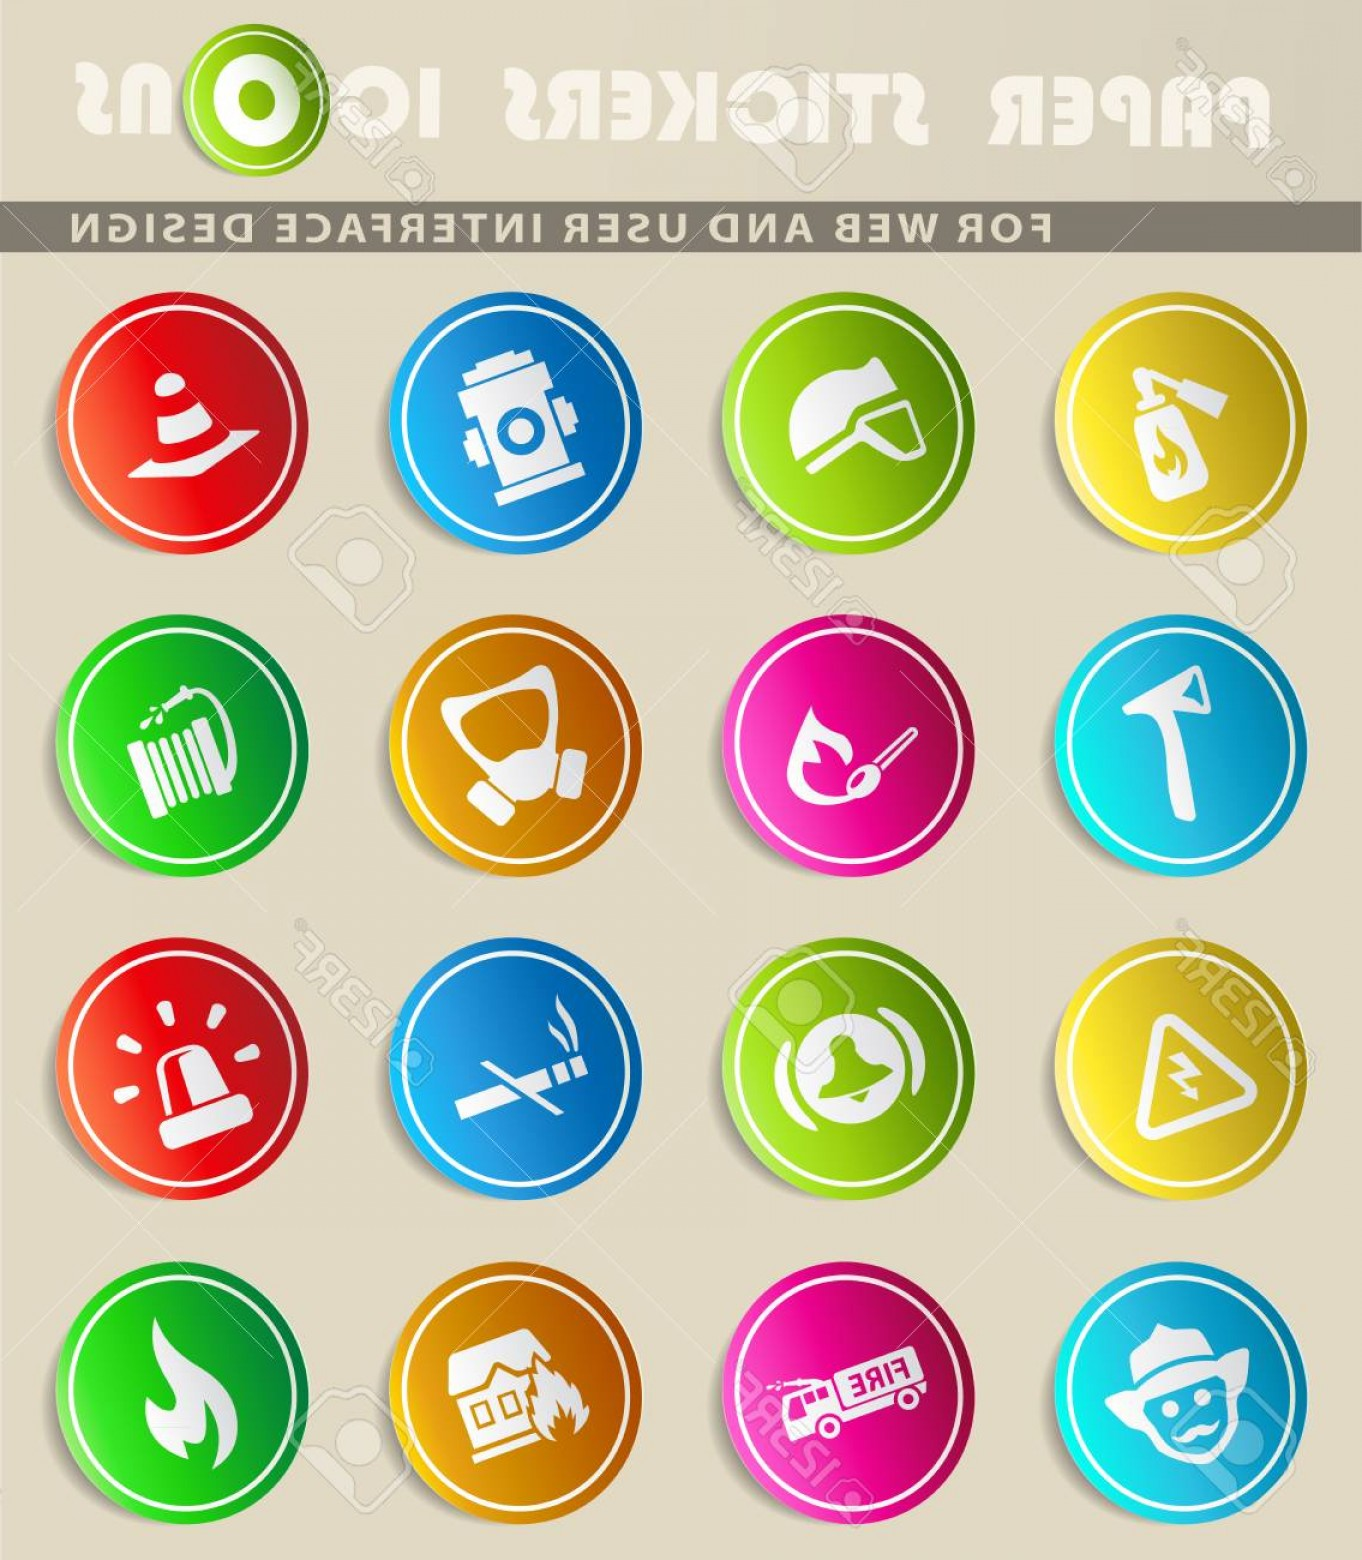 Vector Icons For Designers: Photostock Vector Fire Brigade Vector Icons For User Interface Design